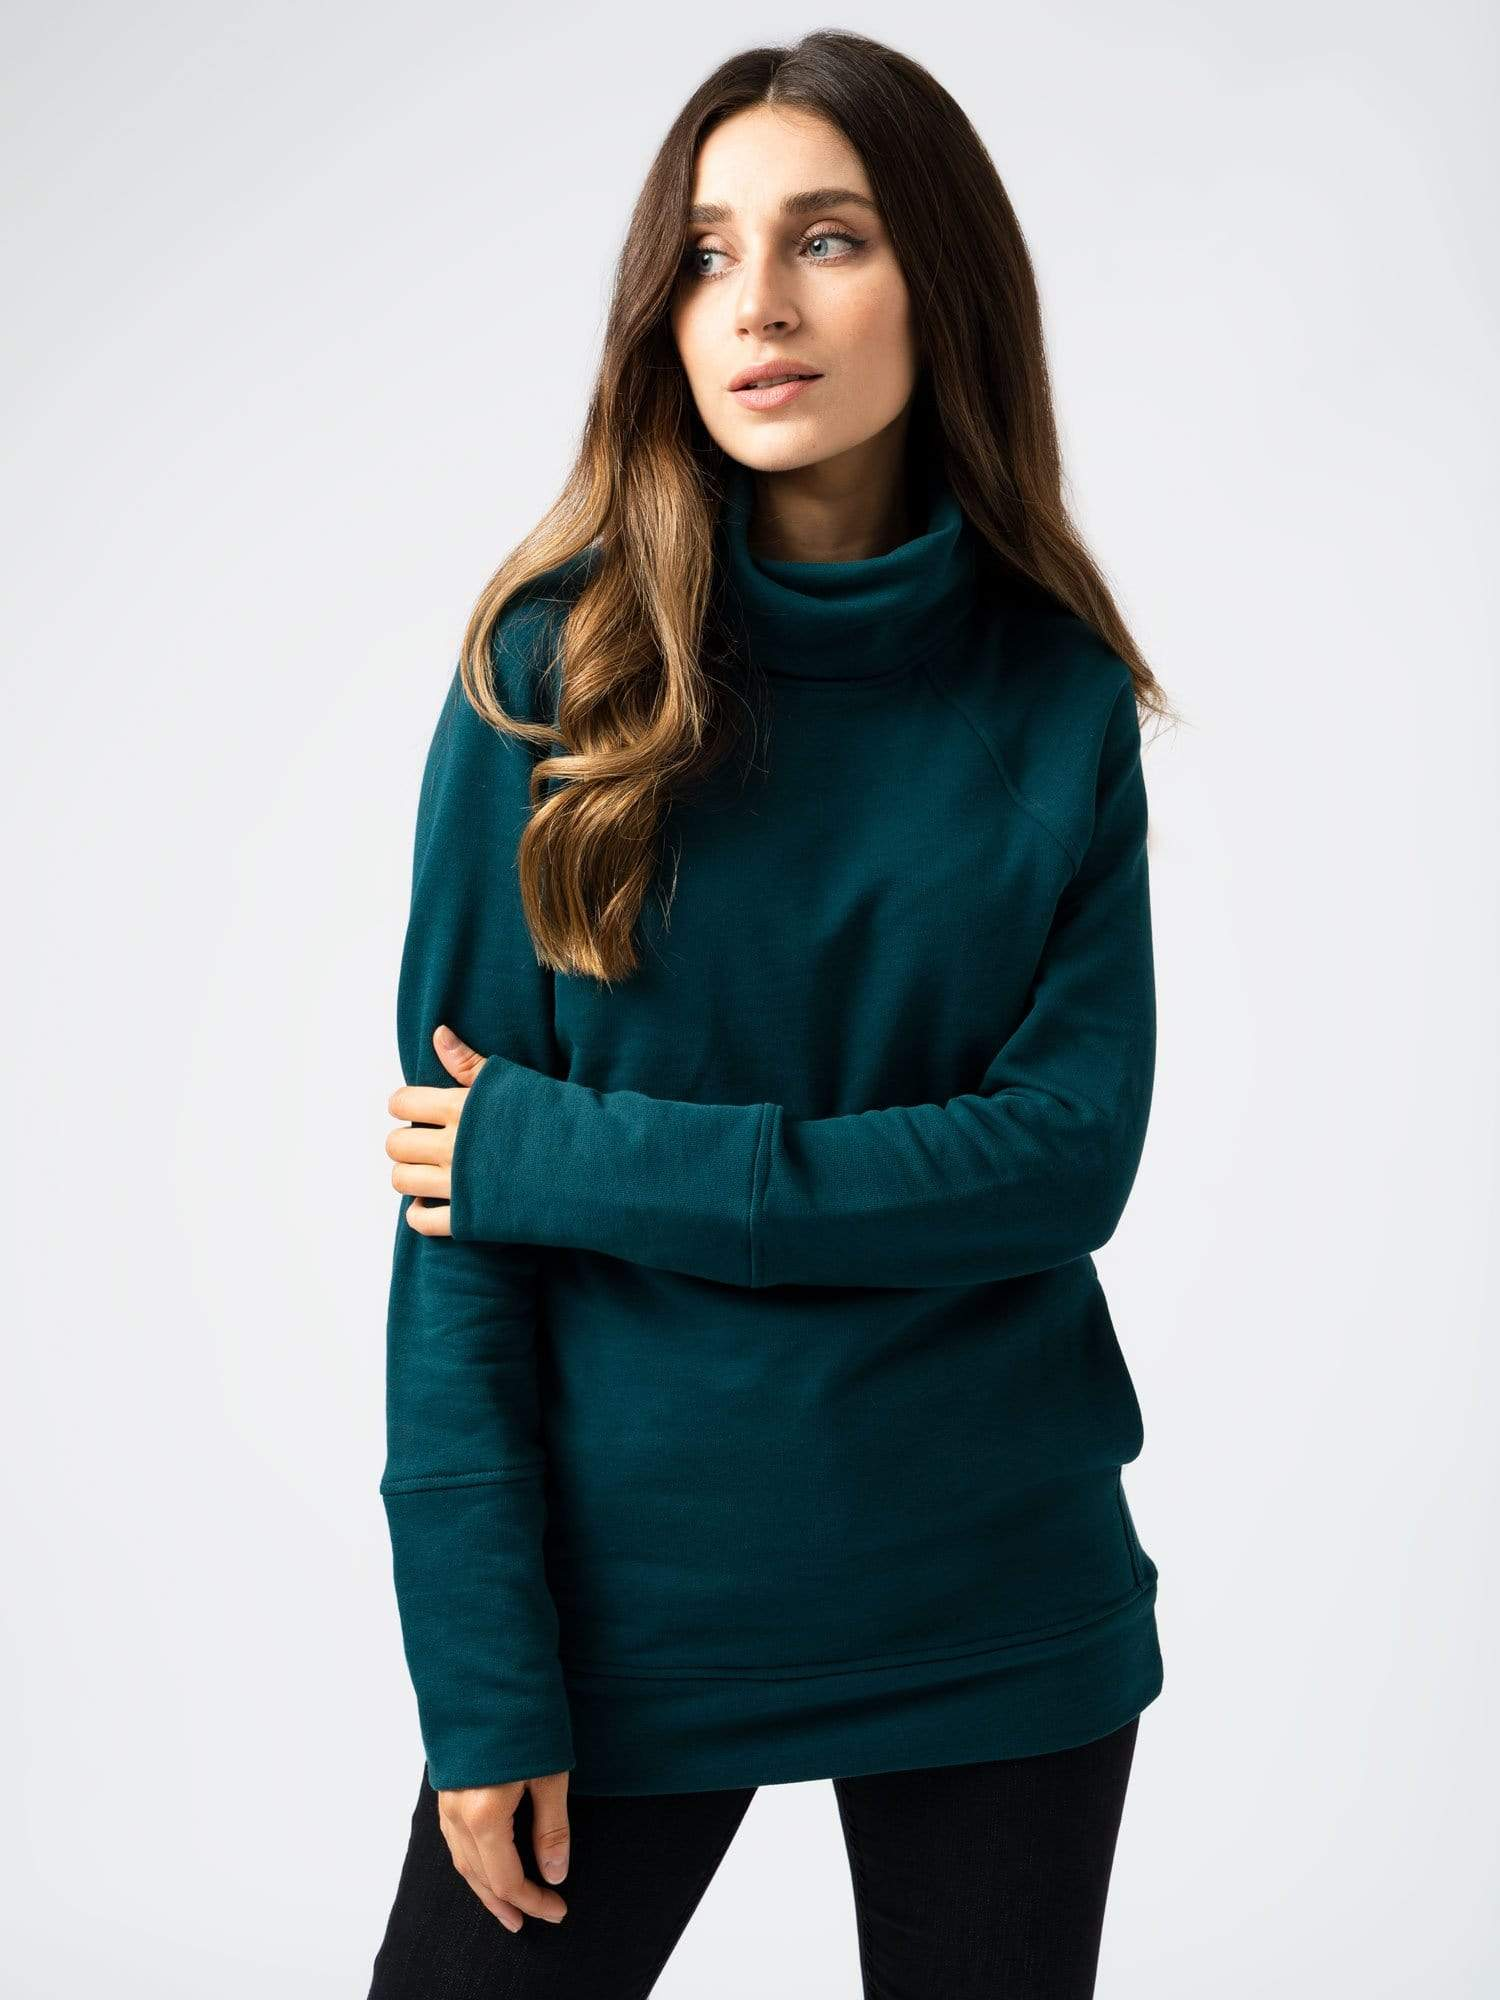 Roll Neck Teal Green